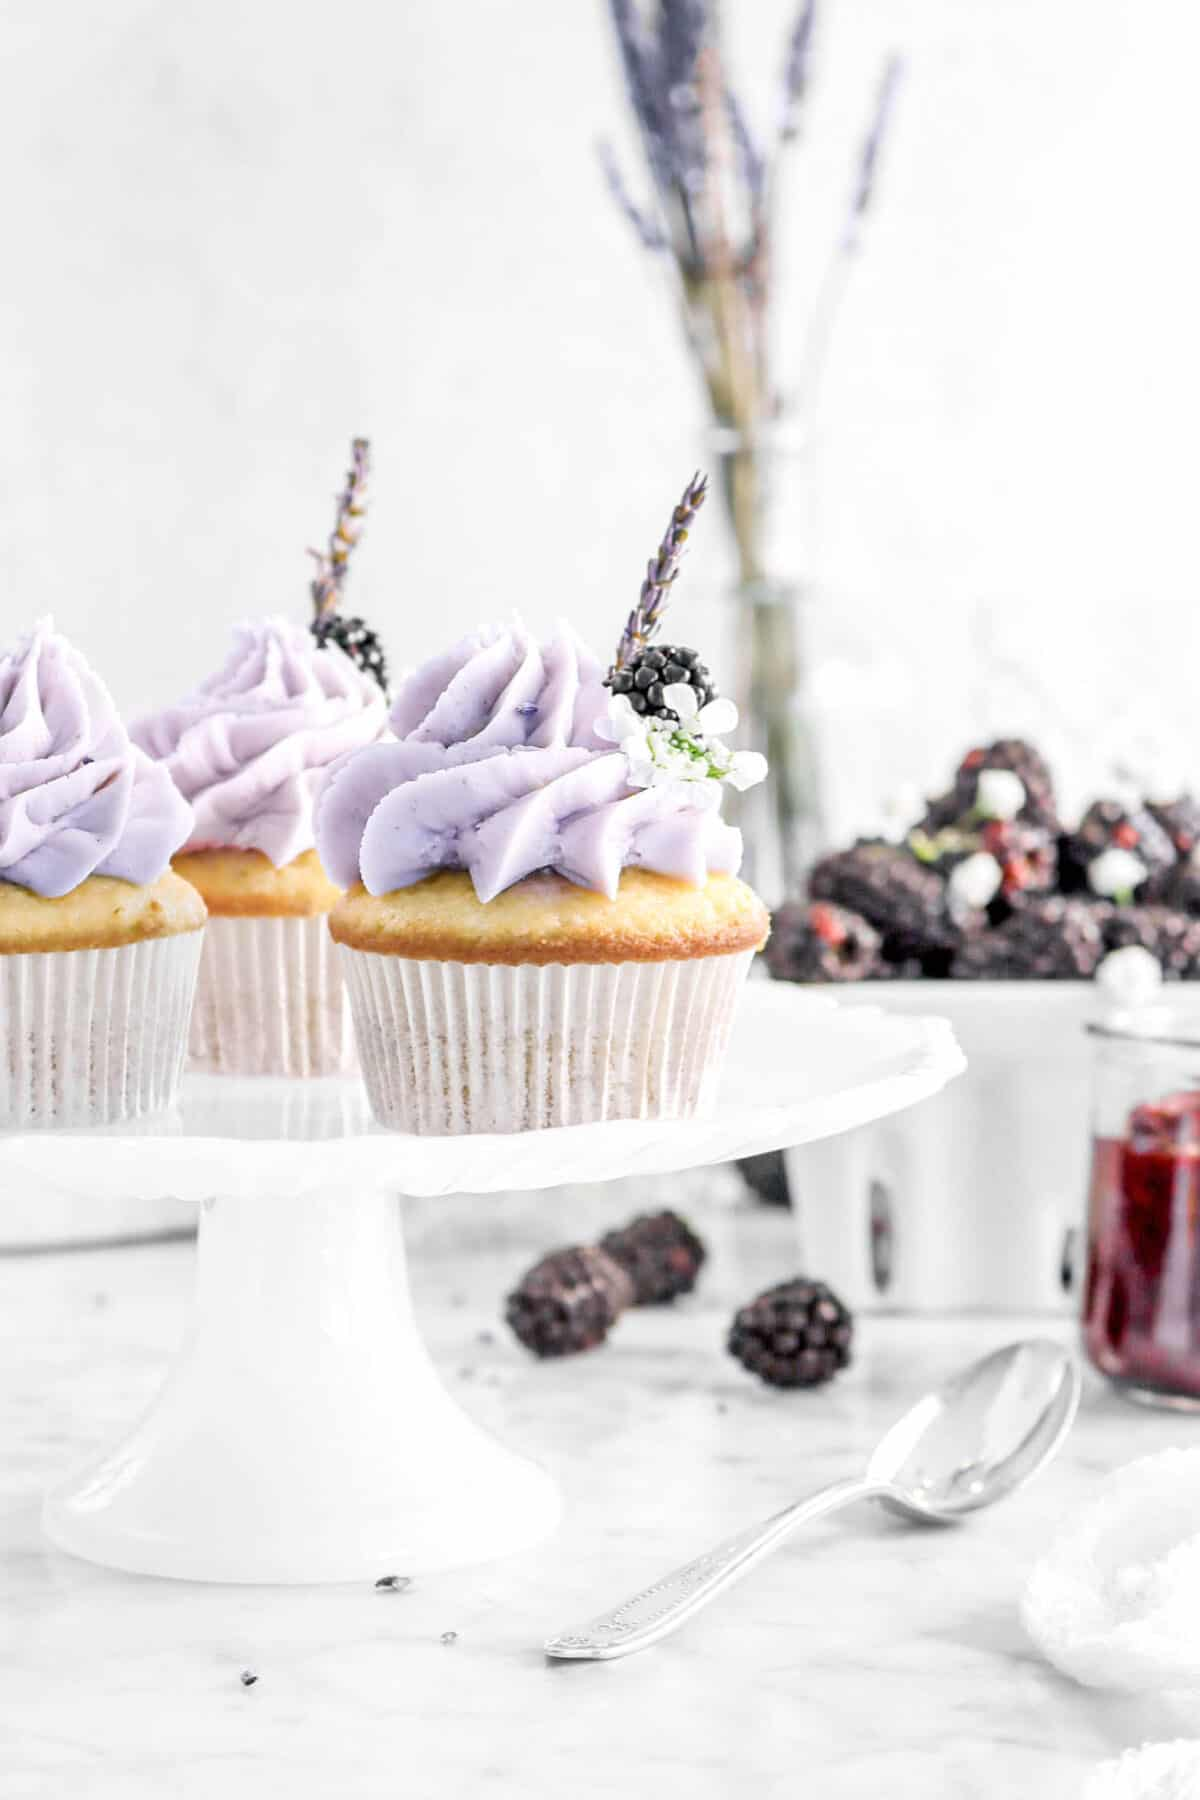 three cupcakes on white cake plate with container o blackberries, fresh flowers, and jar of jam with a spoon